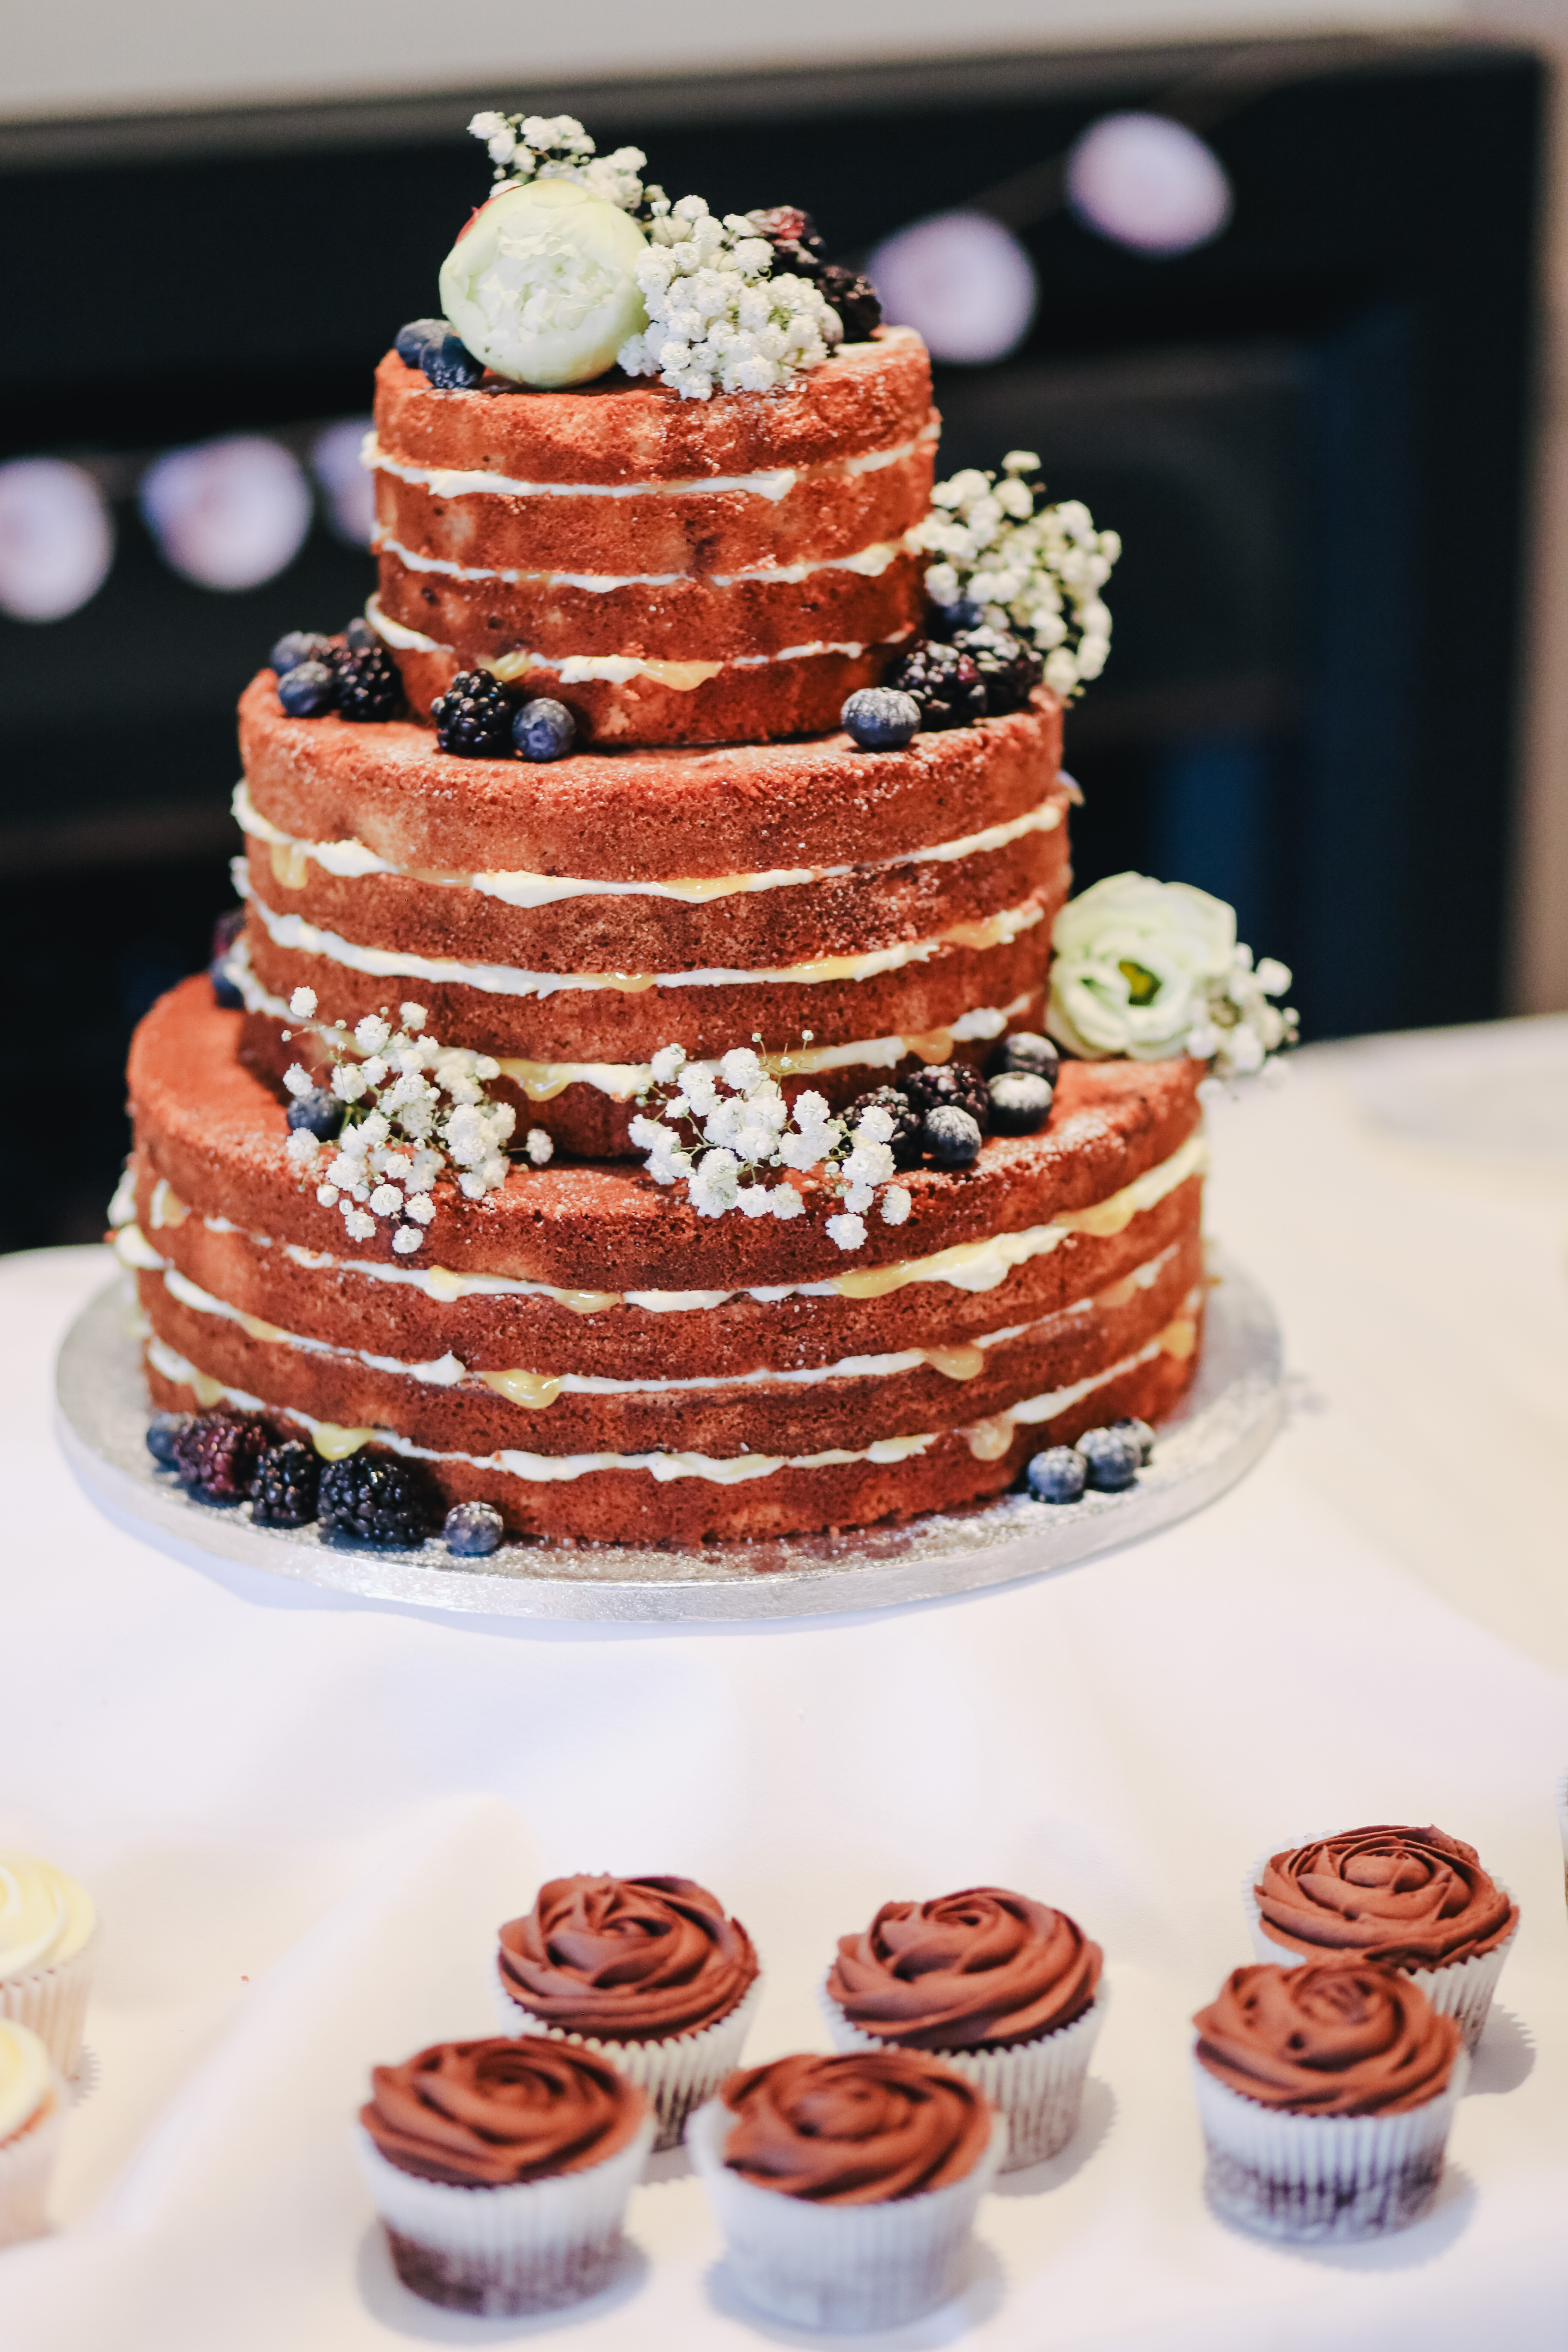 100  Wedding Cake Pictures   Download Free Images on Unsplash icing covered cake beside cupcakes